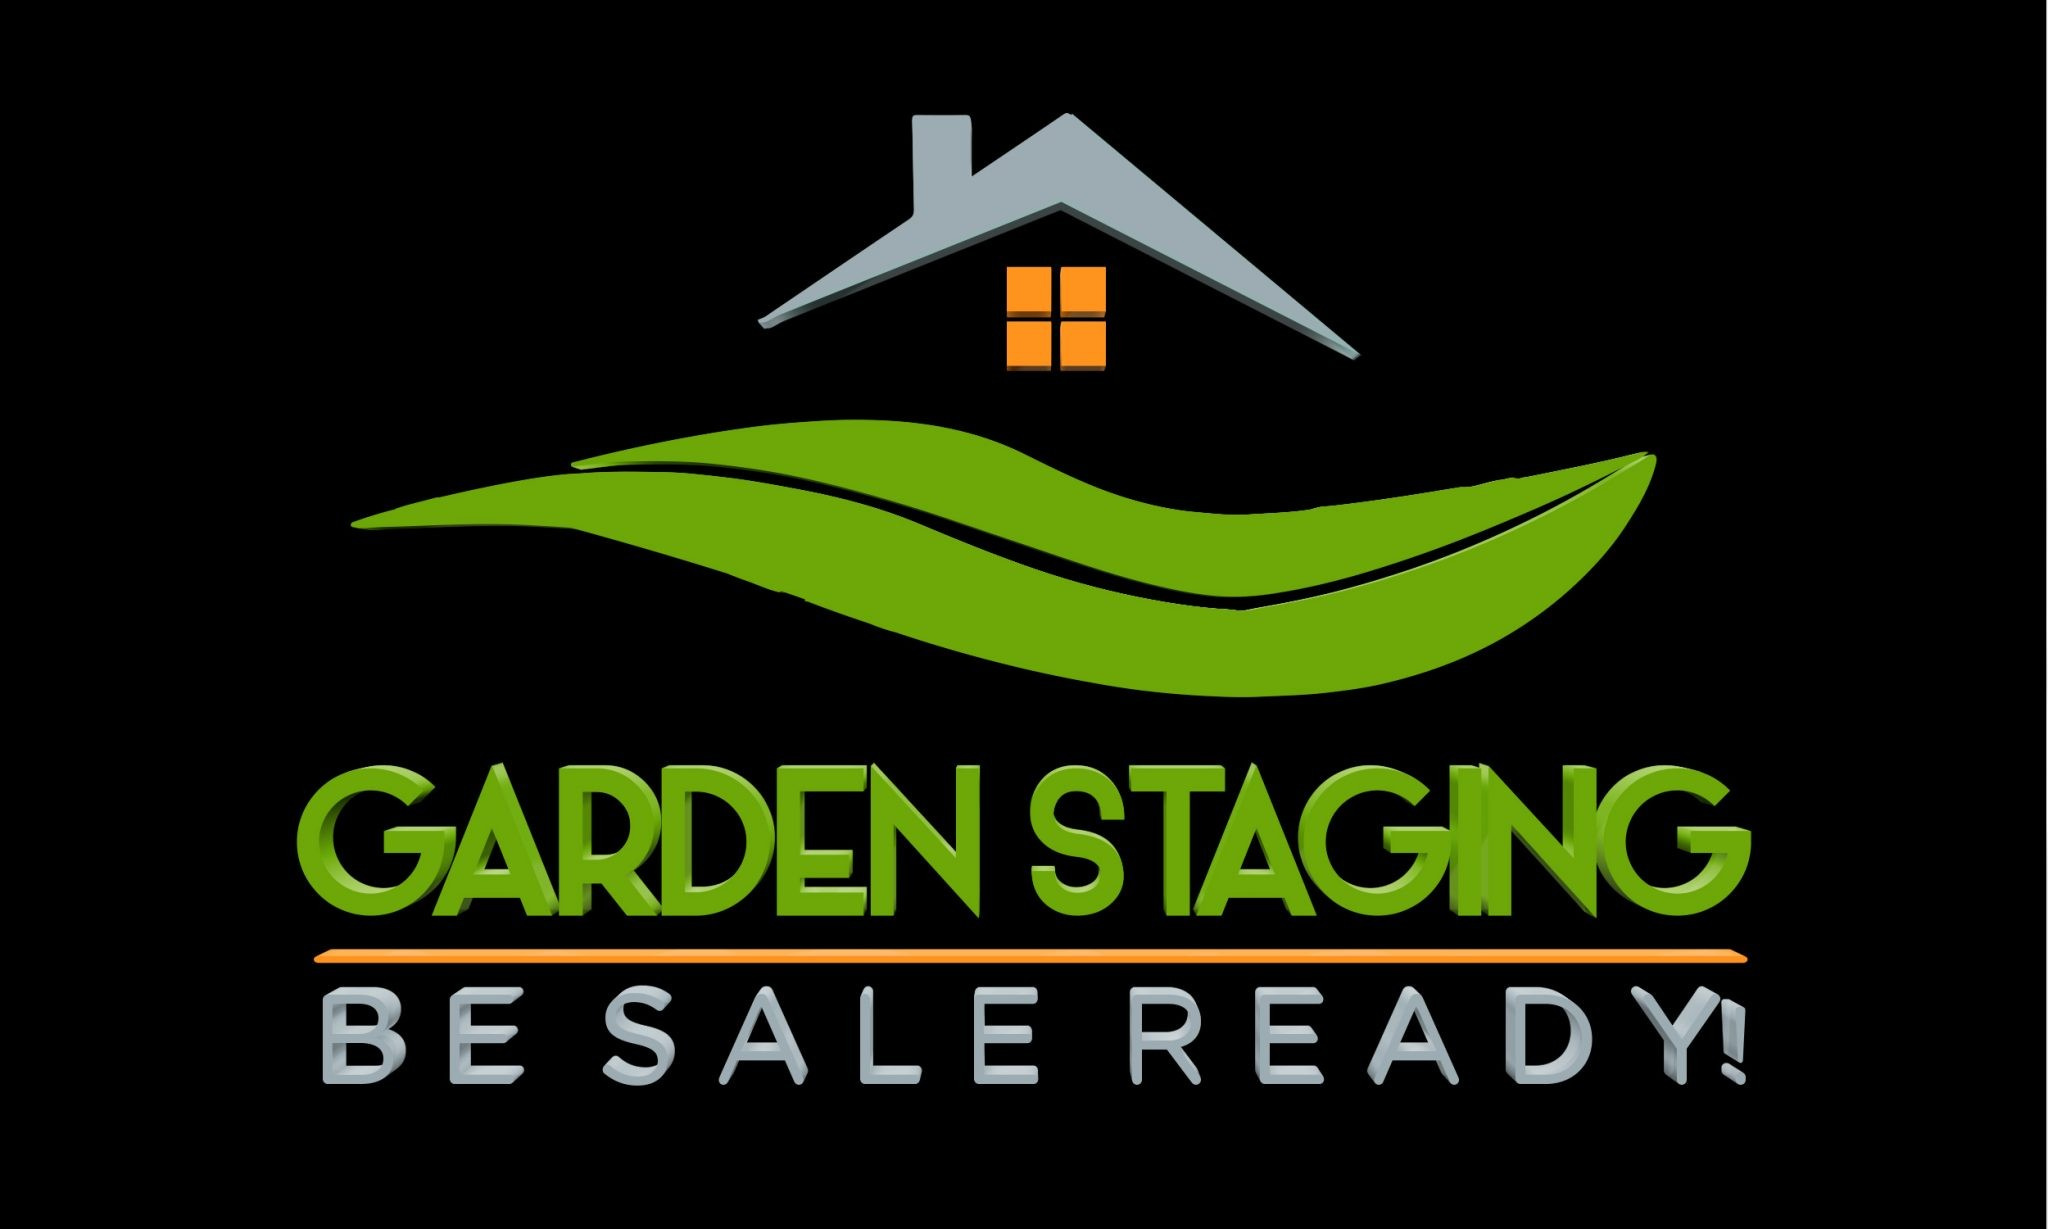 Garden Staging – Be Sale Ready!